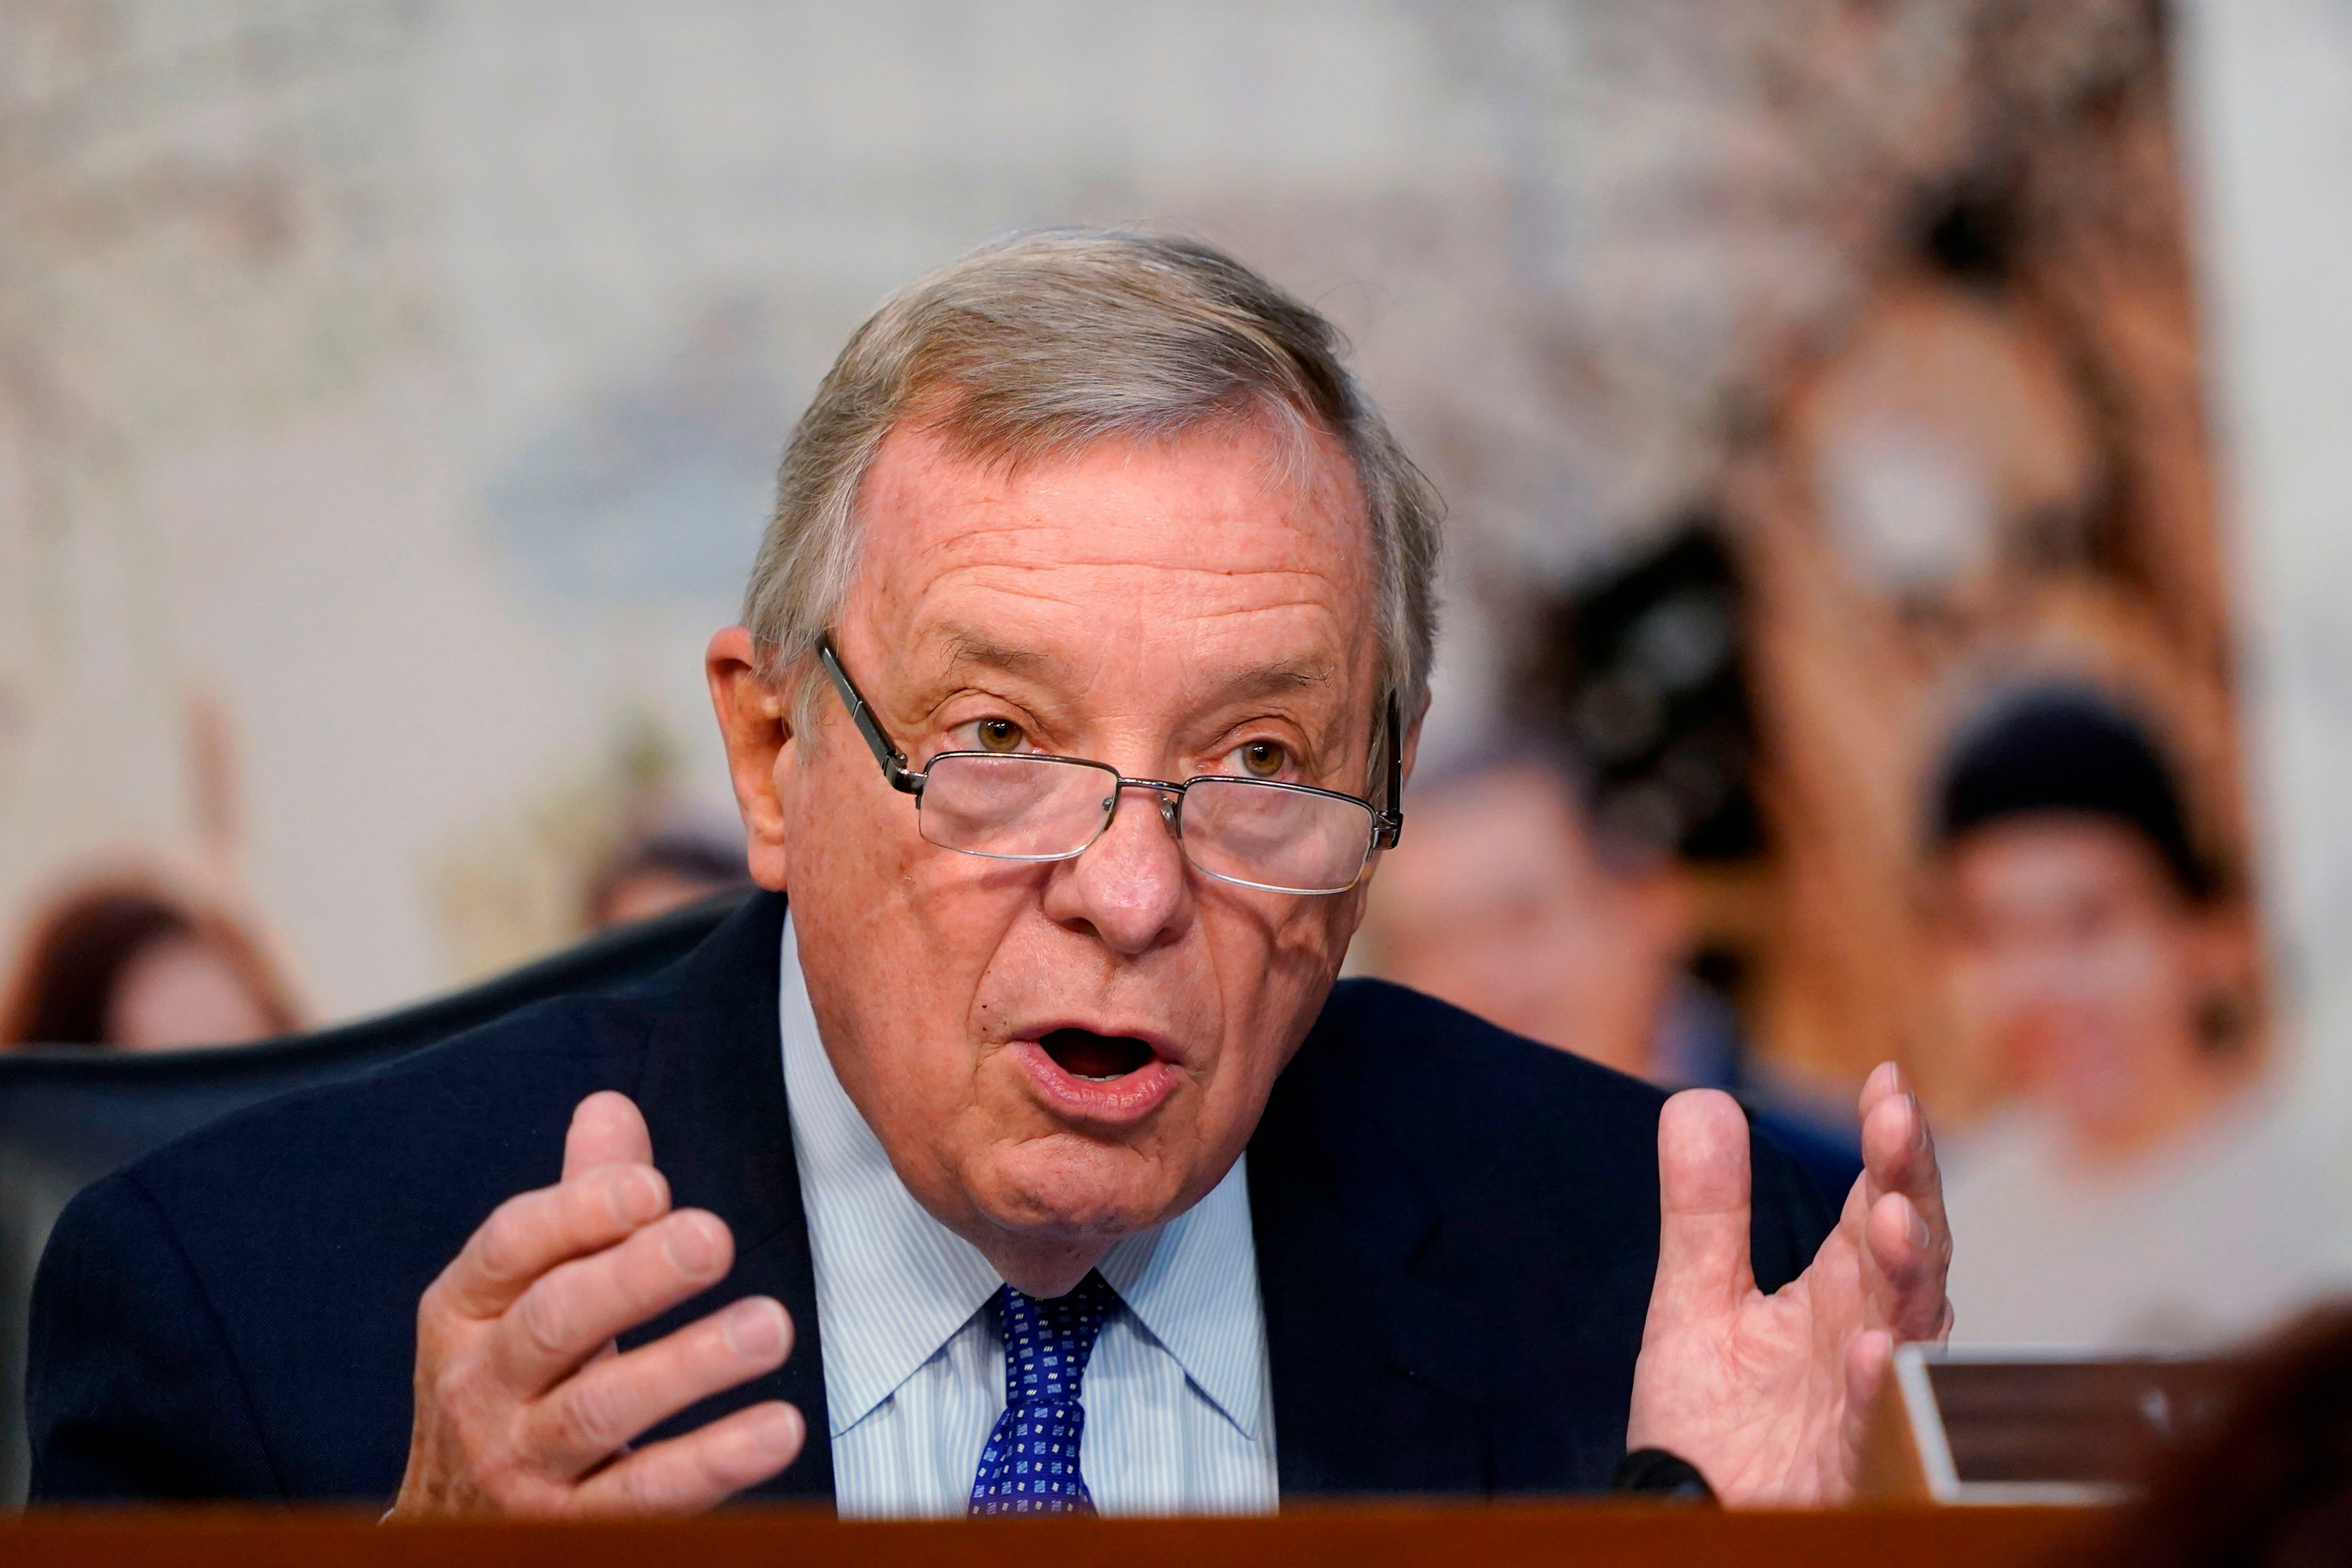 Senate Democratic leaders want members to hold firm against 'lethal' GOP amendments on relief bill